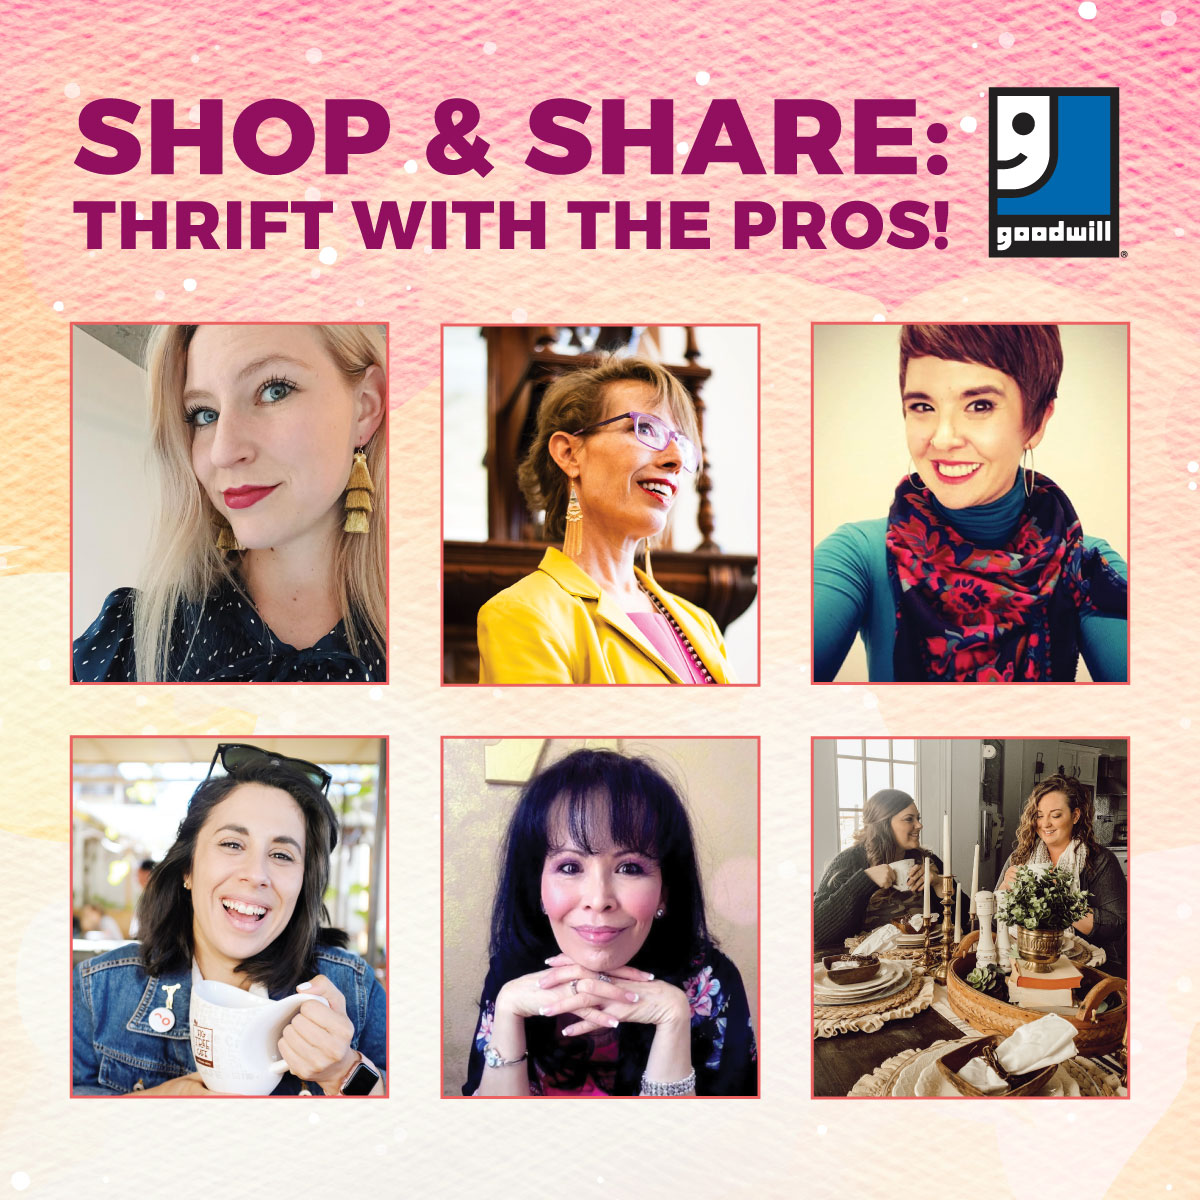 Shop & Share is back! Thrift with the PROS!